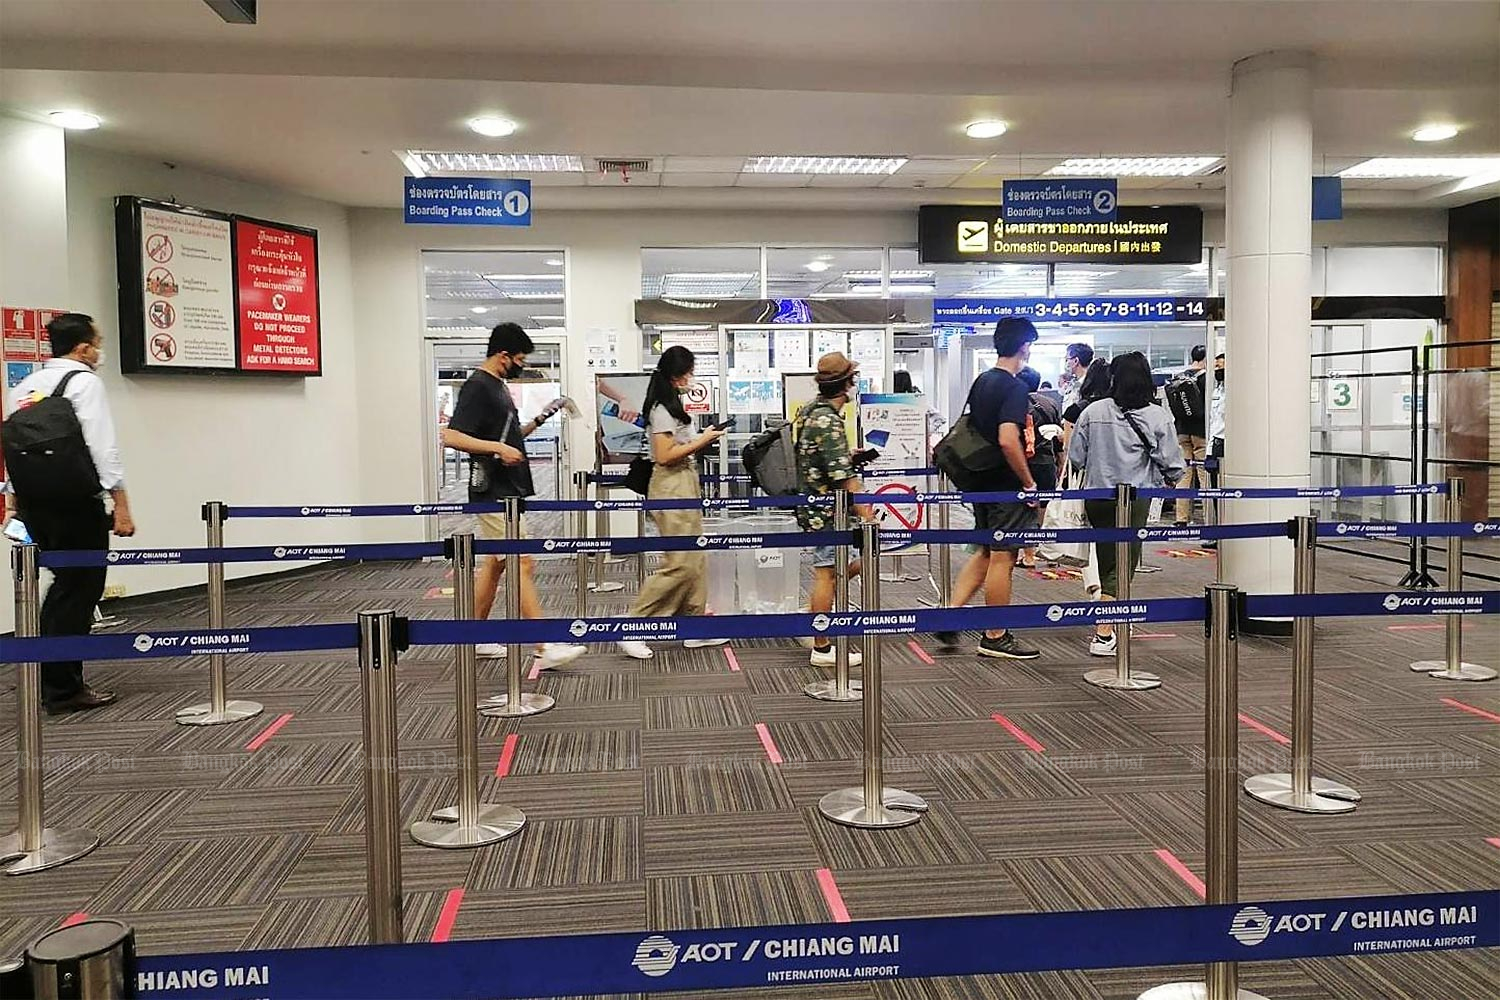 People arrive on scheduled domestic flights at Chiang Mai airport on Thursday. More flights and passengers are expected at the airport this month with the Covid-19 lockdown easing. (Photo by Phanumet Tanraksa)